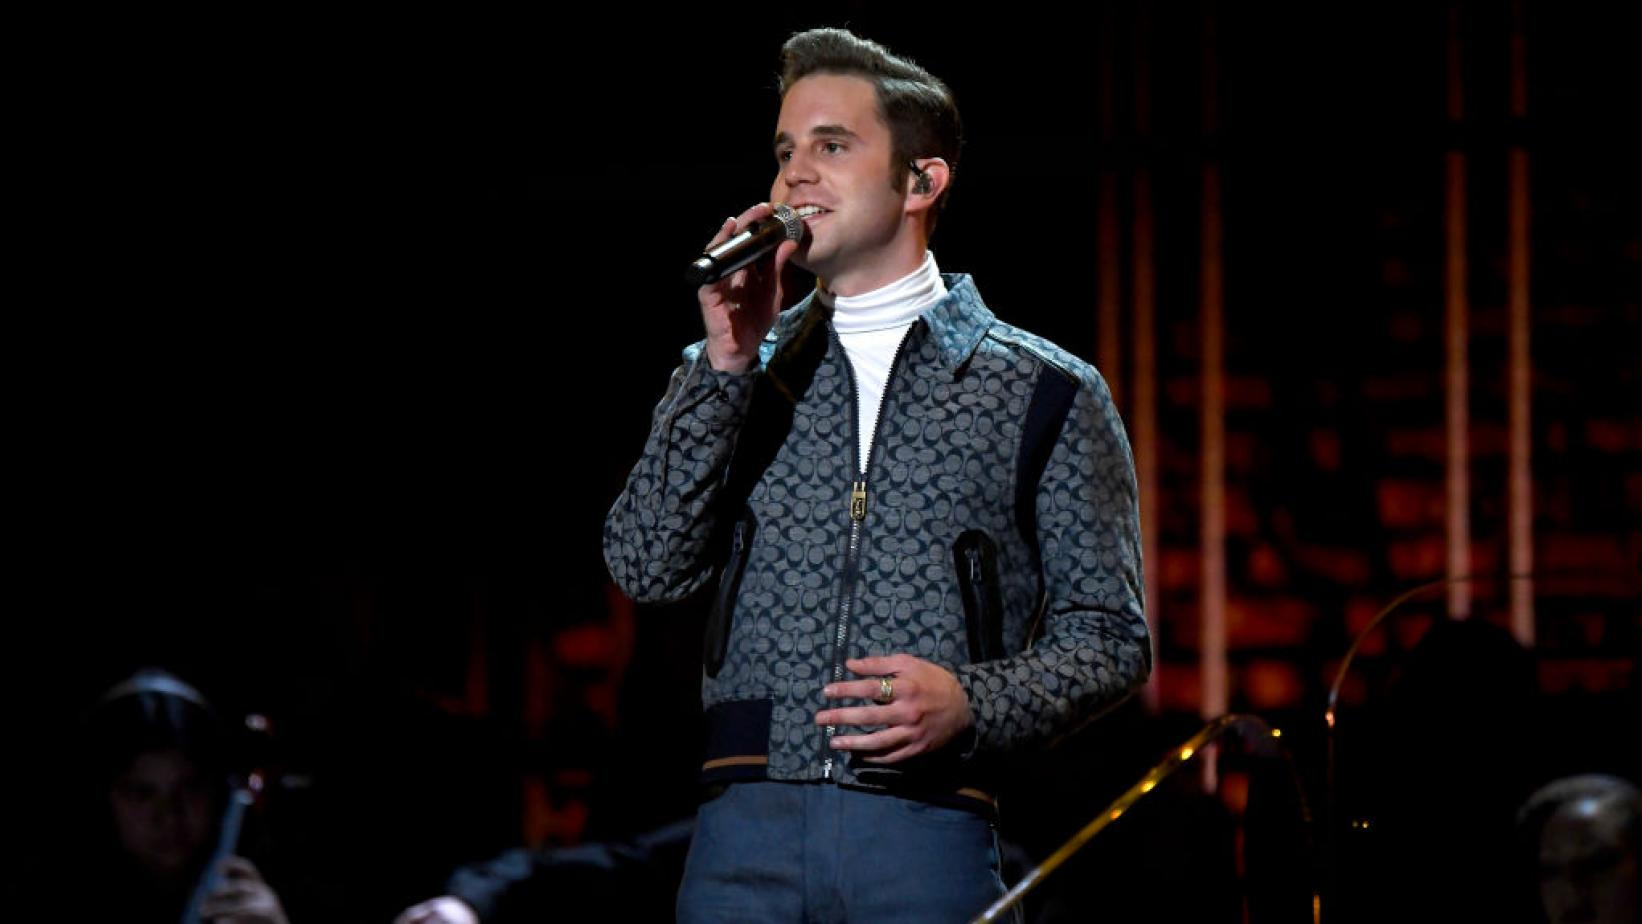 Ben Platt performs at the 62nd GRAMMY Awards in 2020